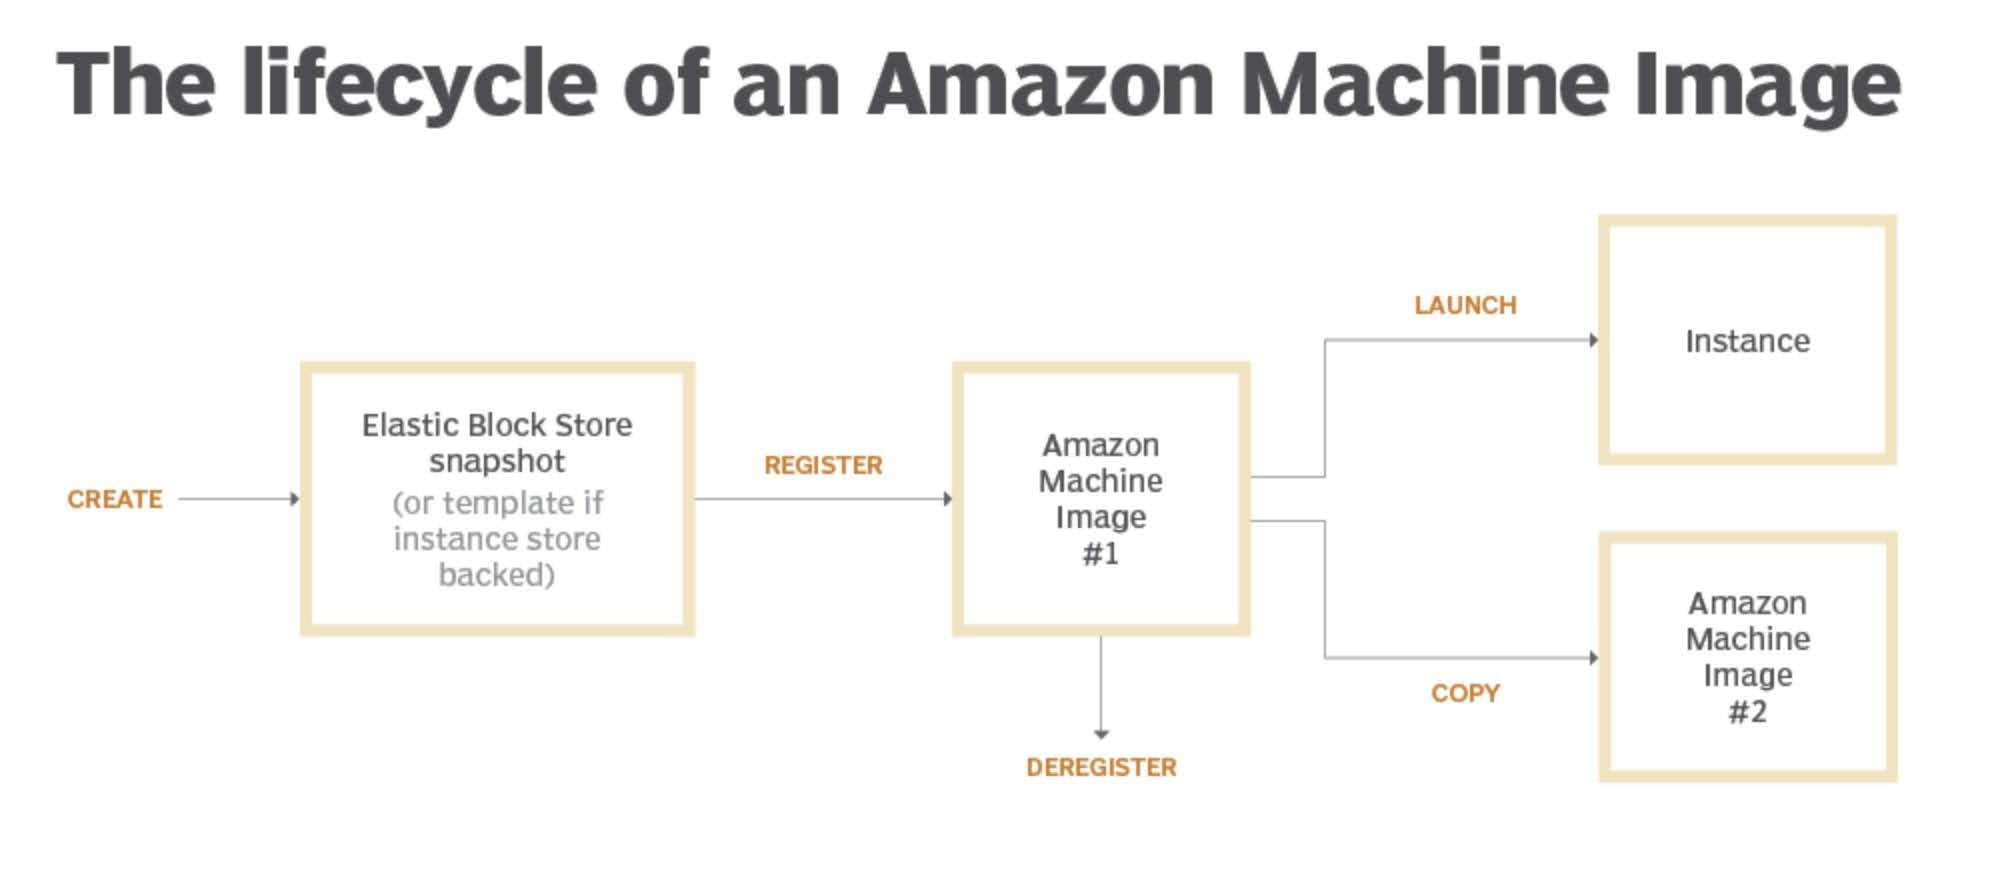 The lifecycle of an Amazon Machine Image (AMI)